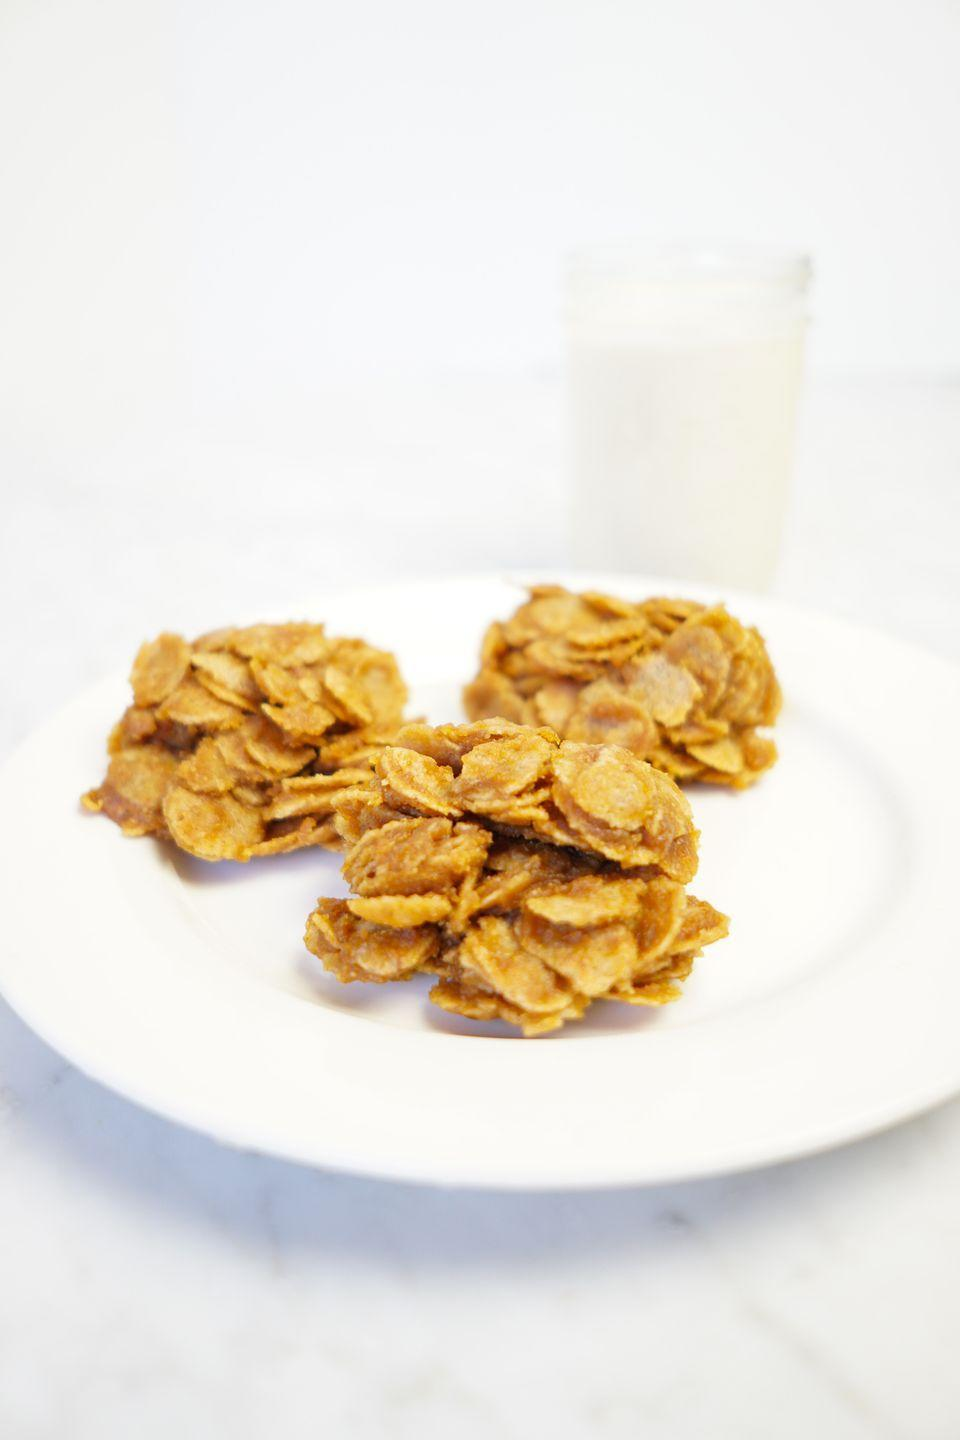 """<p>These healthy no-bake cornflake clusters have major childhood vibes and take just minutes to make. </p><p><a class=""""link rapid-noclick-resp"""" href=""""https://www.whitneyerd.com/2019/10/no-bake-pumpkin-peanut-butter-cornflake-clusters.html"""" rel=""""nofollow noopener"""" target=""""_blank"""" data-ylk=""""slk:GET THE RECIPE"""">GET THE RECIPE</a></p><p><em>Per serving: 375 calories, 20 g fat (7.5 g saturated), 43 carbs, 102 mg sodium, 24 g sugar, 3 g fiber, 8 g protein</em></p>"""